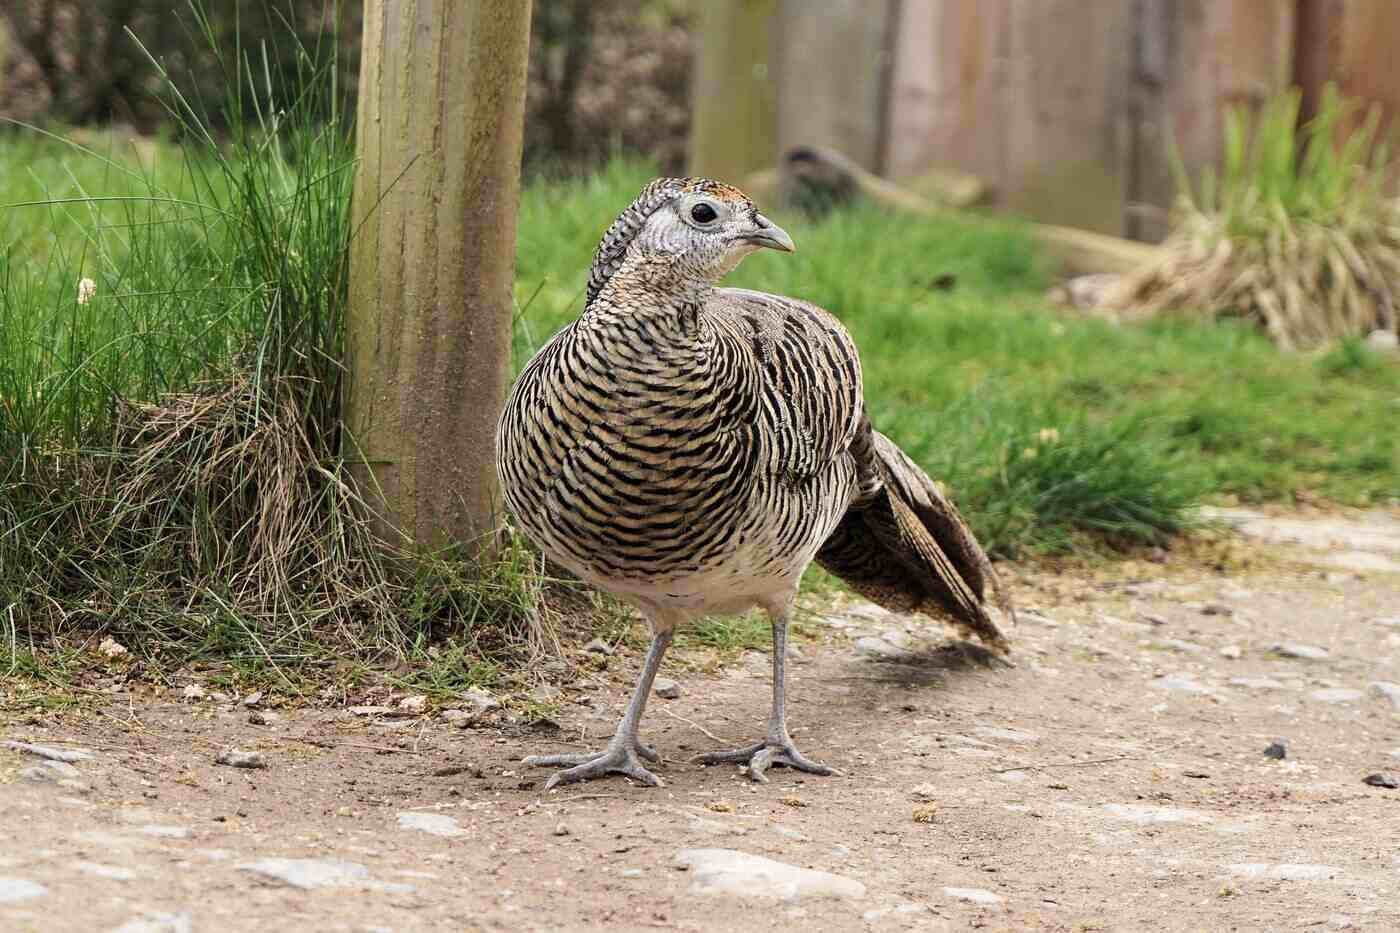 female golden pheasant - 20 cool facts about the golden pheasant